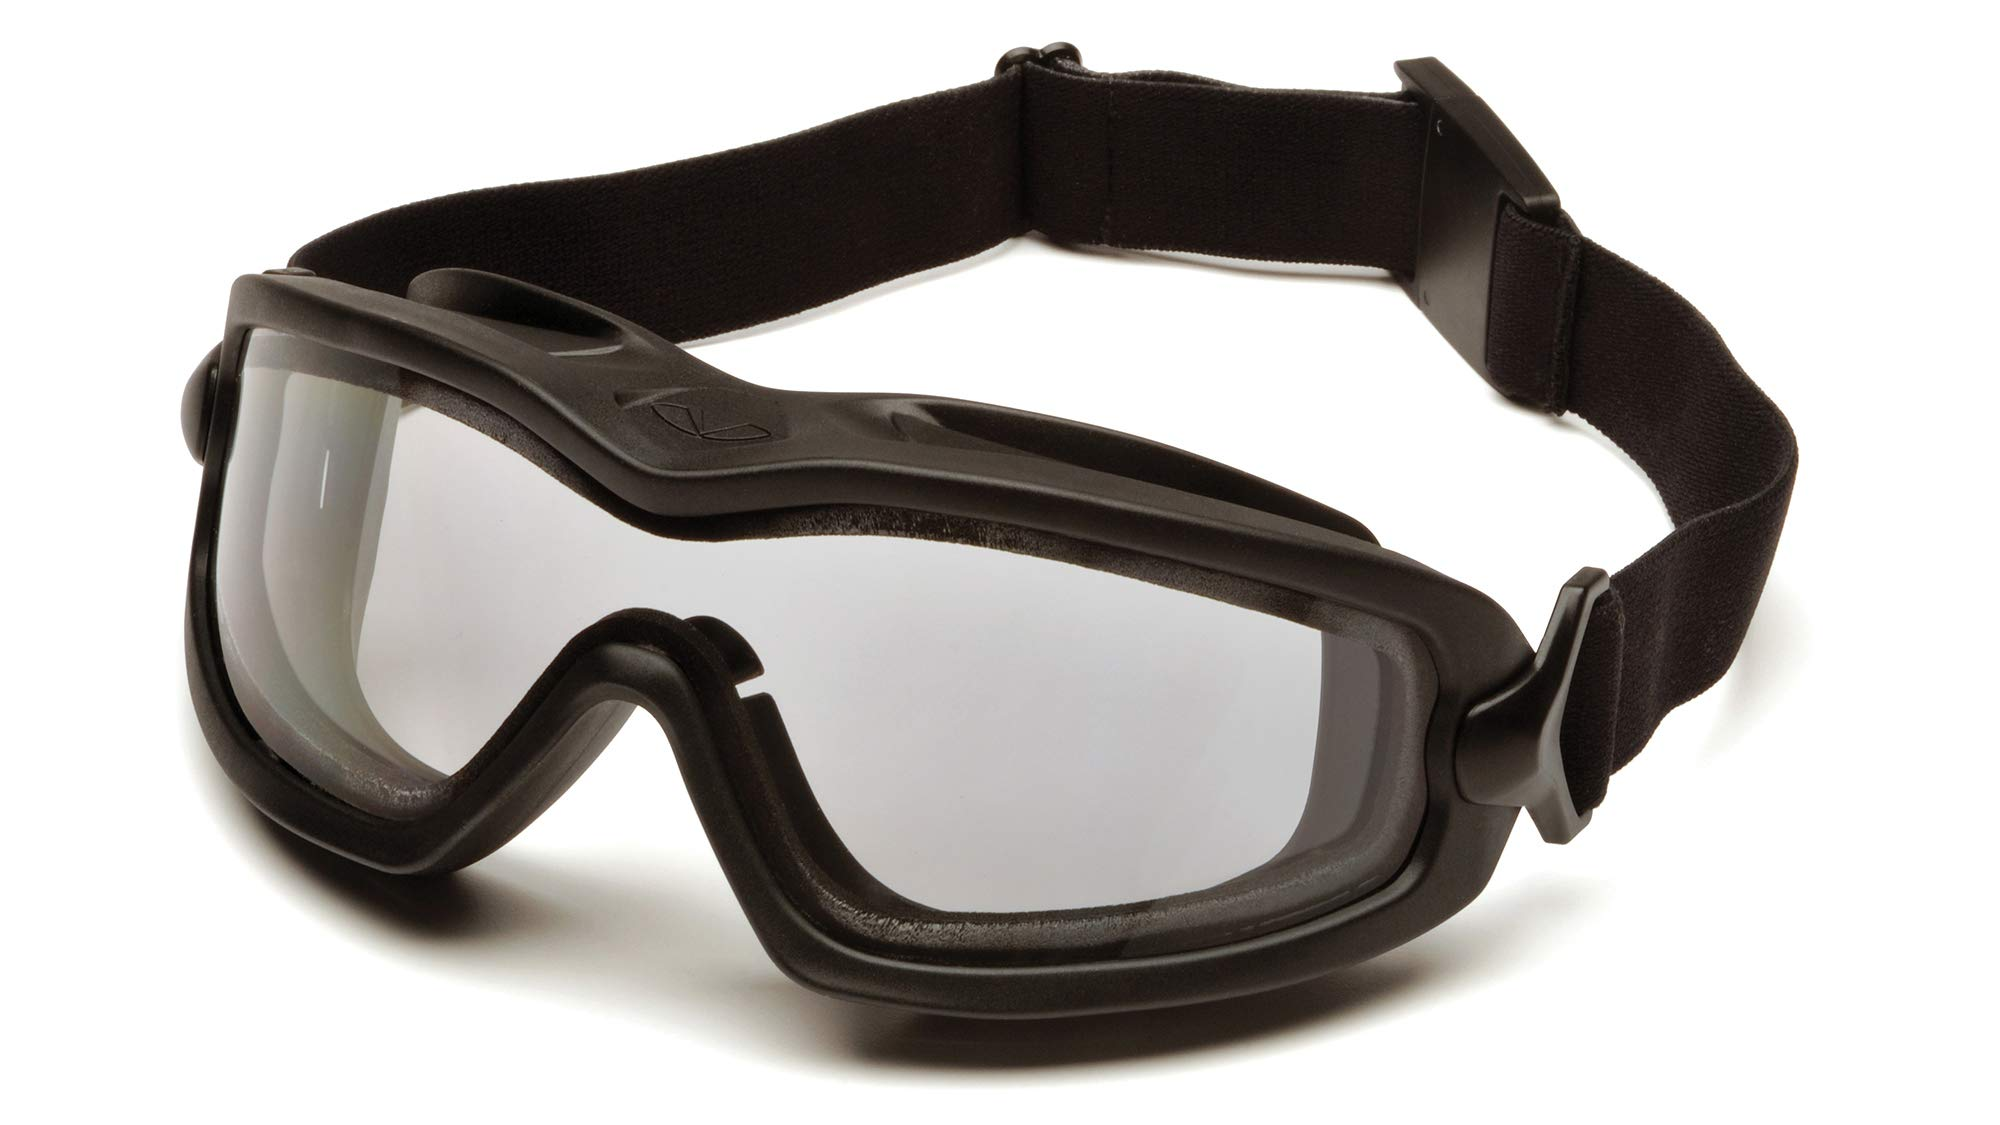 Pyramex GB6410SDT V2G-Plus Goggle with Anti-Fog Lens, Black, (Pack of 12)